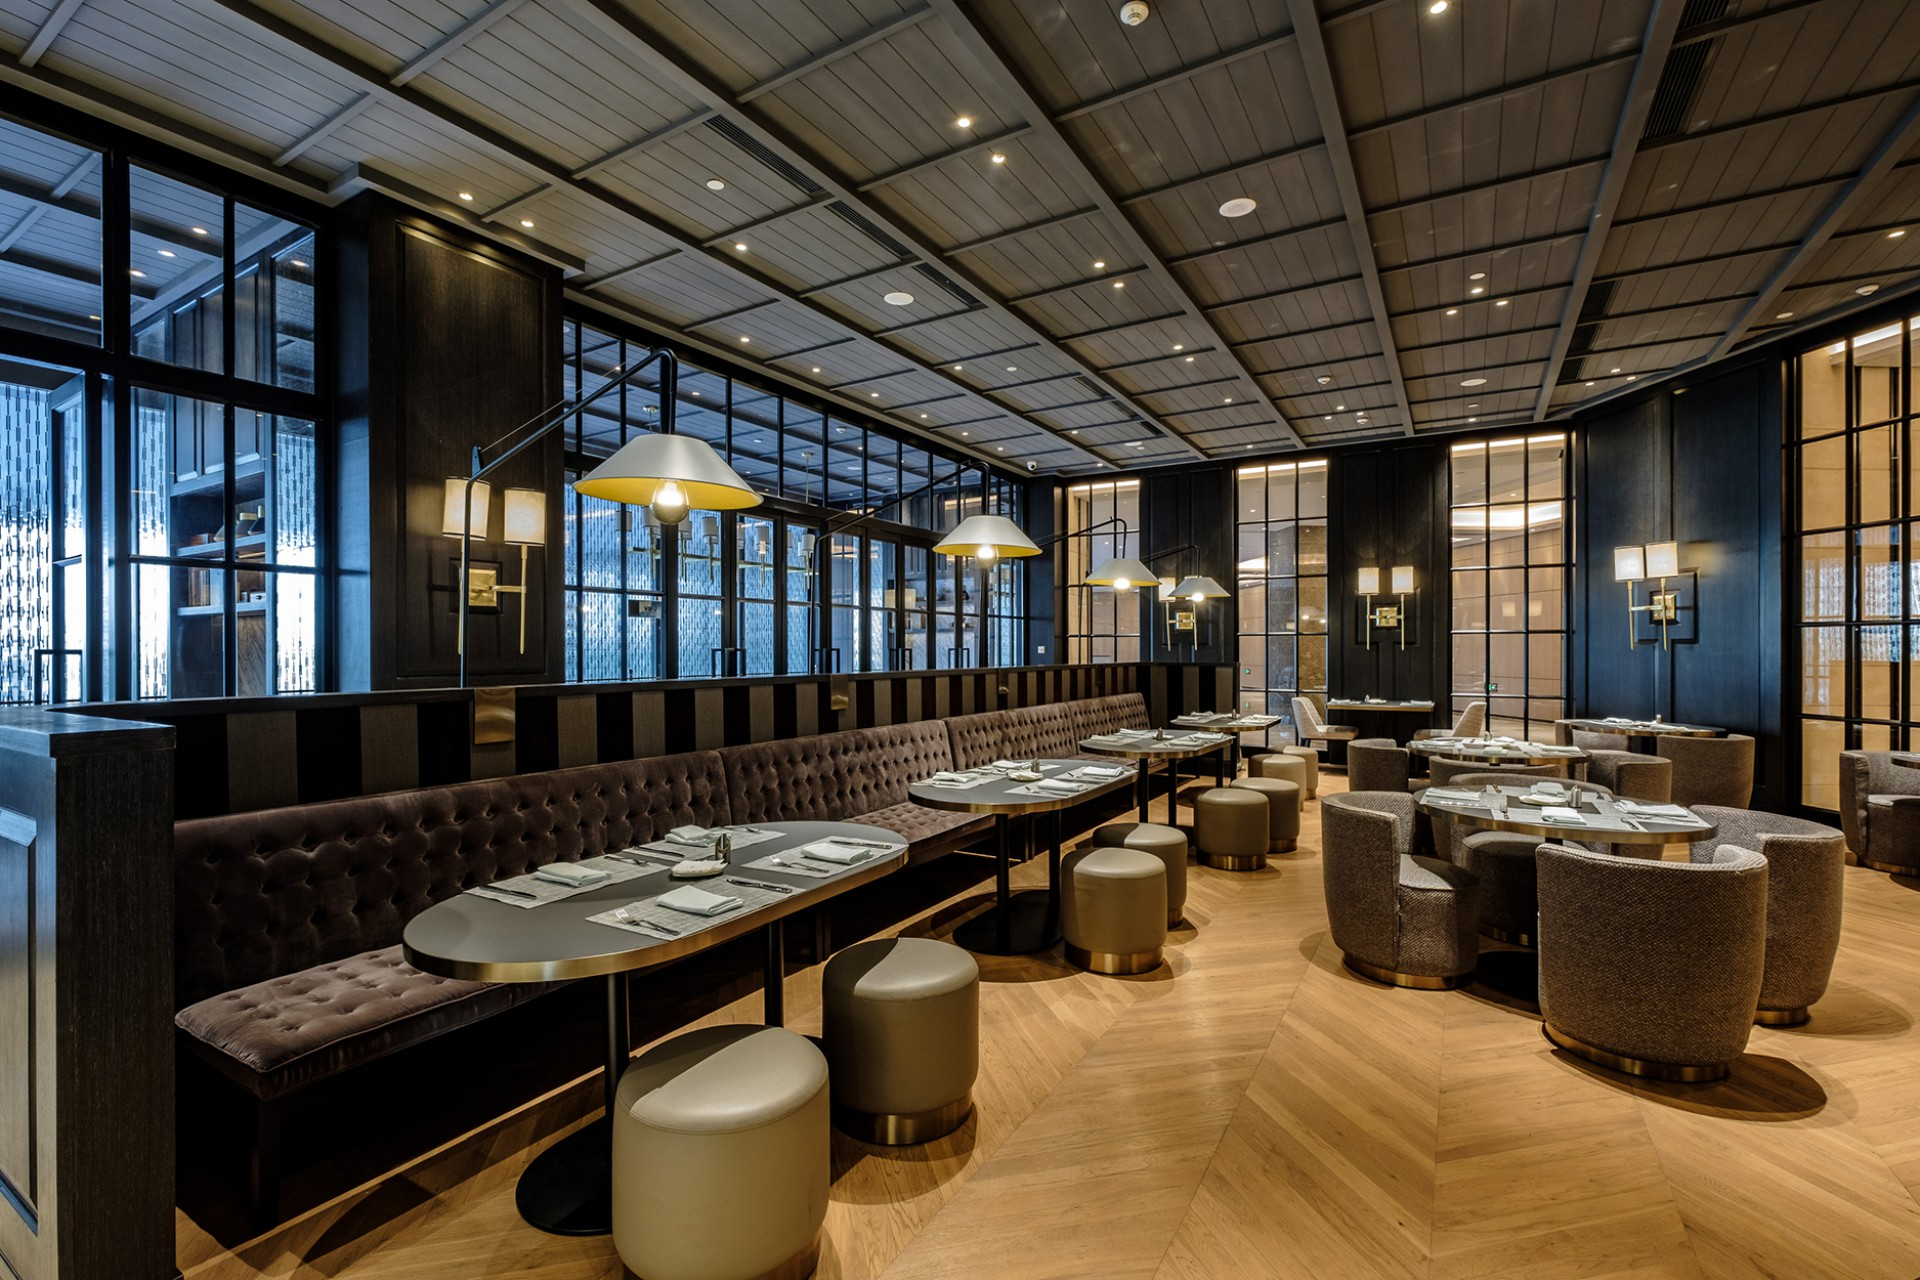 Le Bistrot At Le Meridien All Day Dining